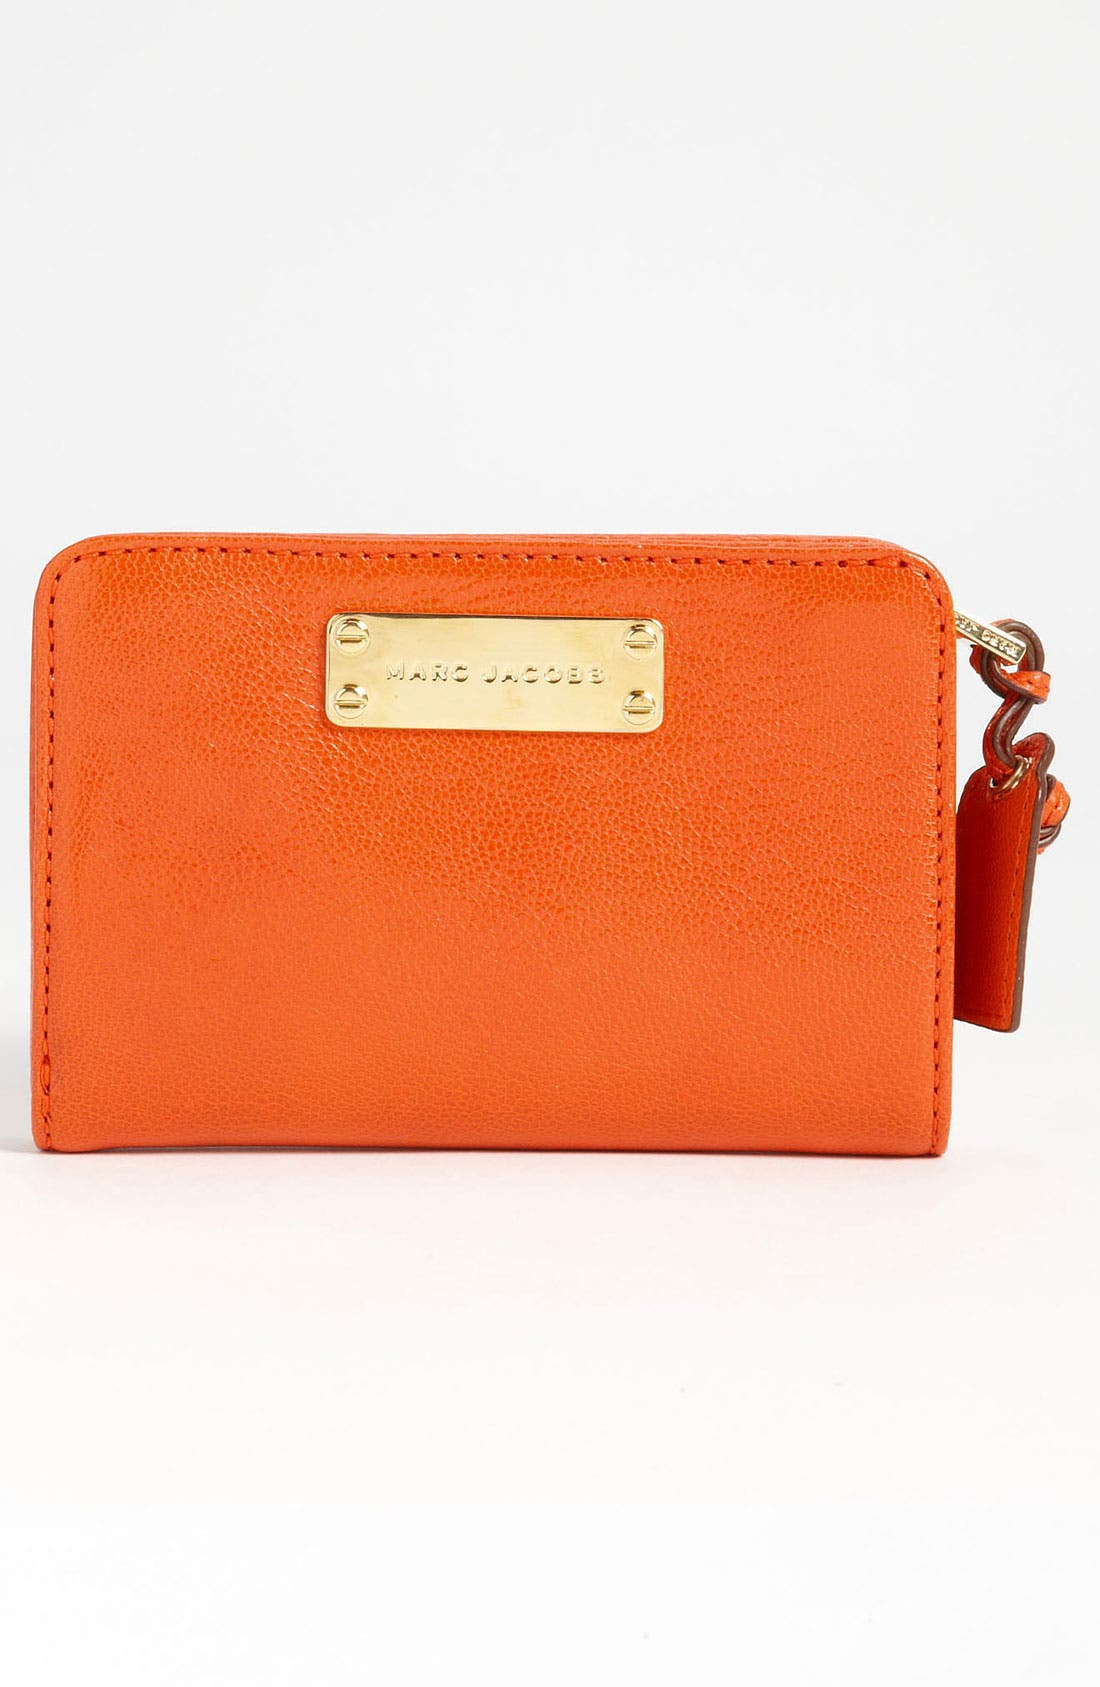 Main Image - MARC JACOBS 'Wellington' Leather French Wallet